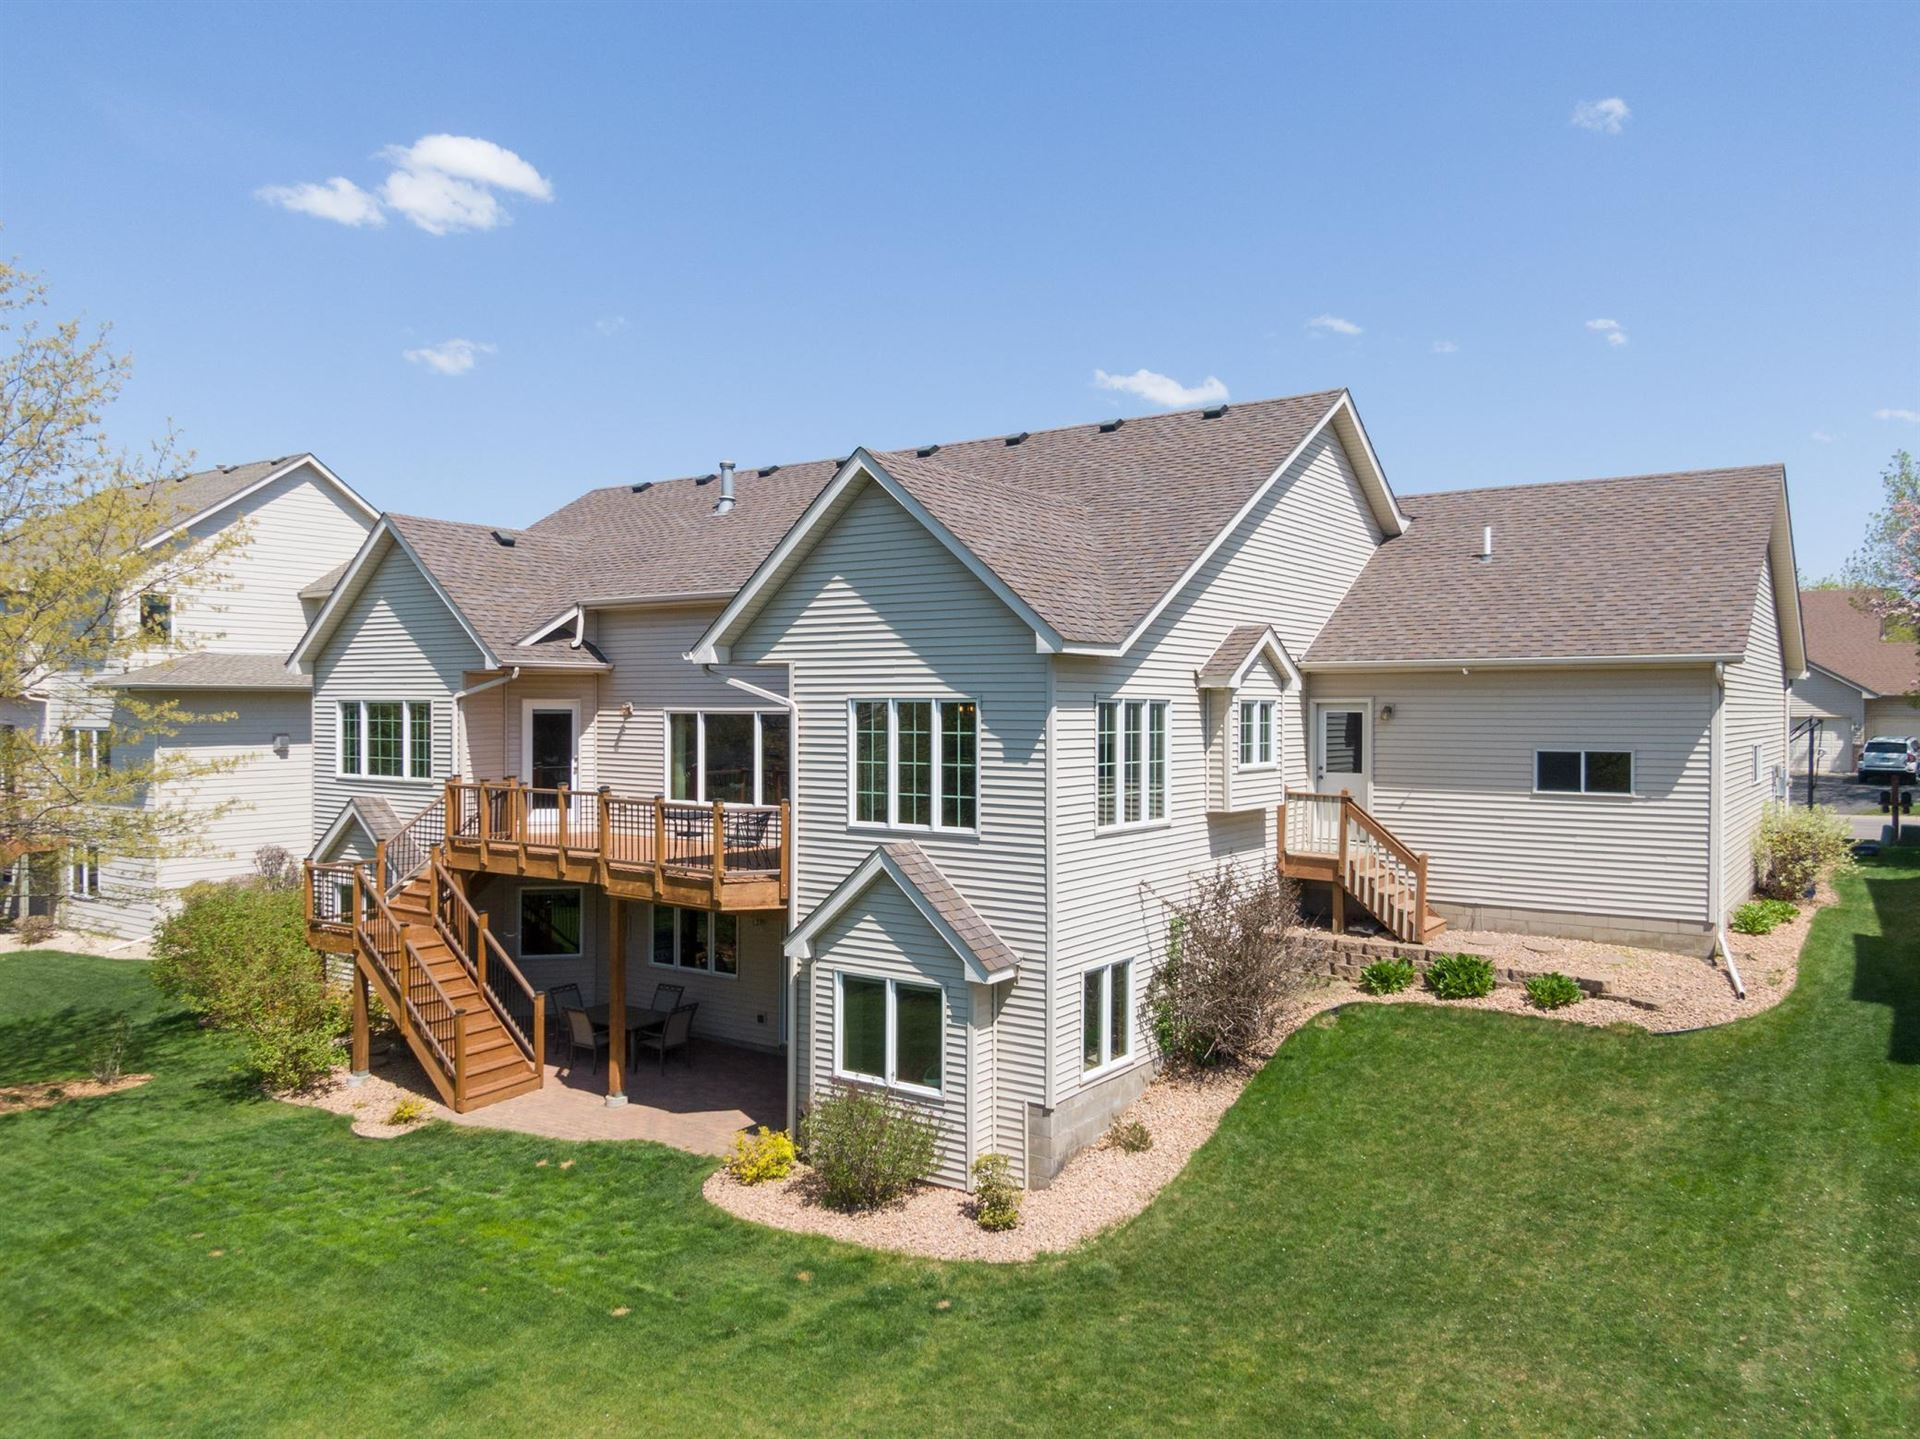 Photo of 14258 Fossil Lane, Apple Valley, MN 55124 (MLS # 5752545)